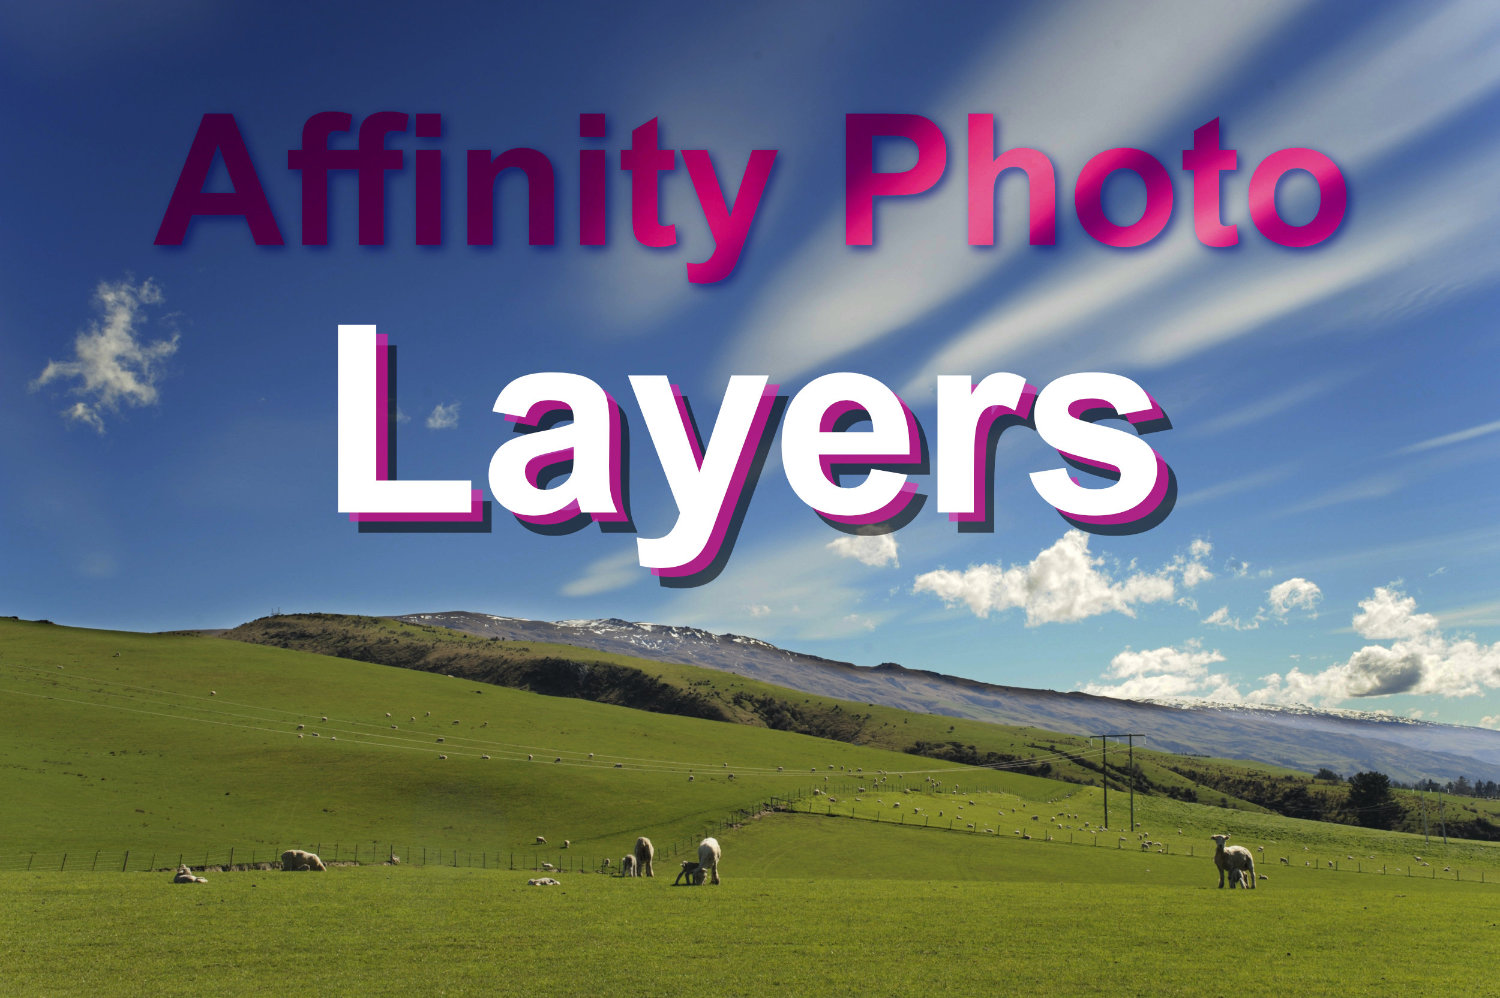 Using layers in Affinity Photo